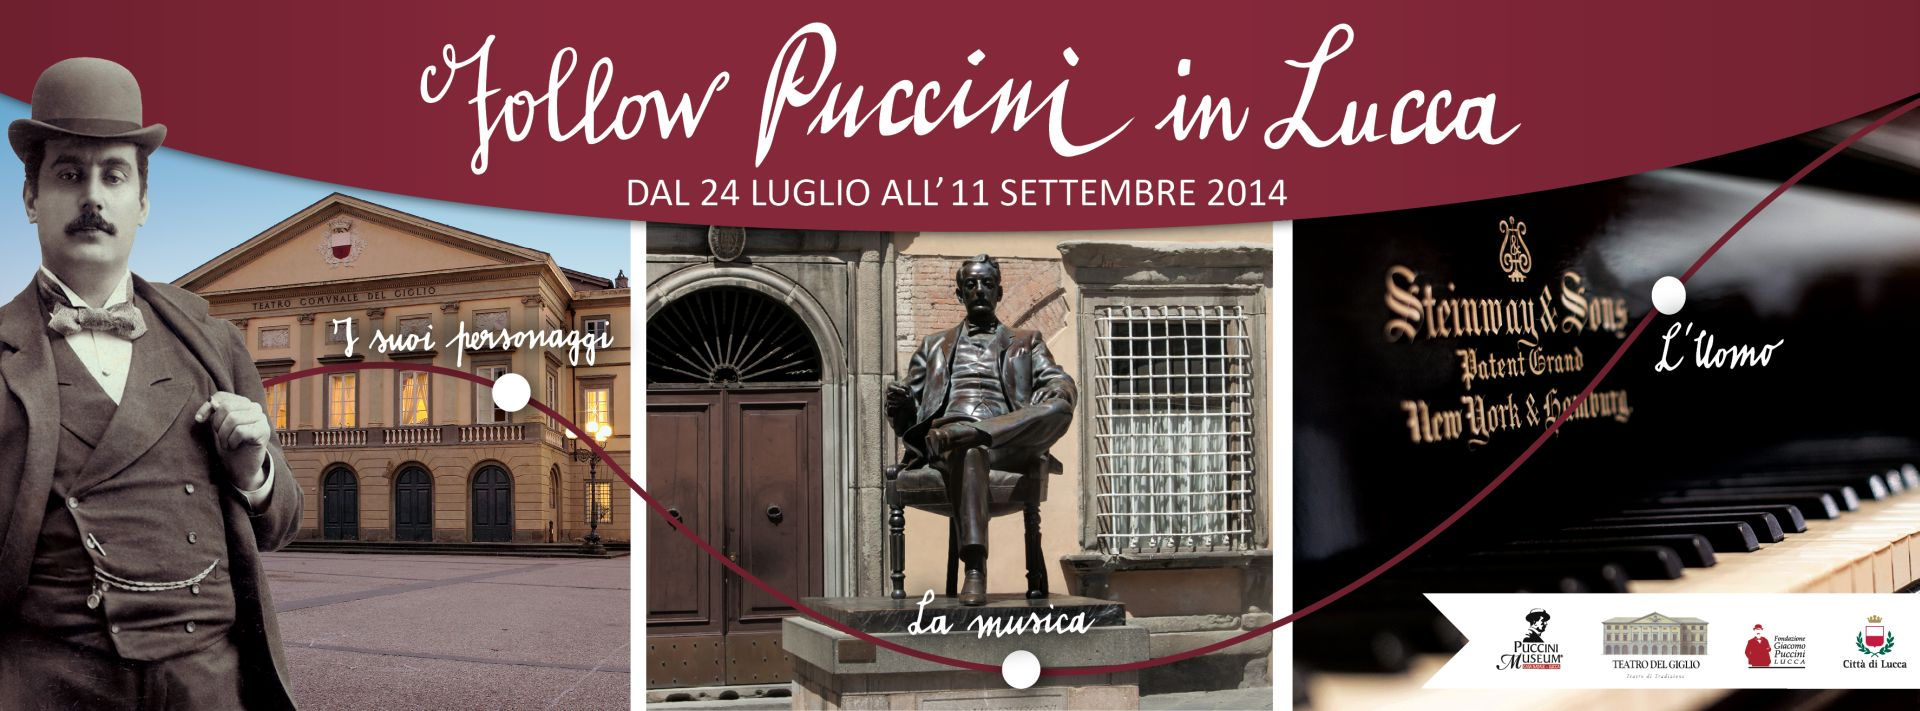 FOLLOW PUCCINI IN LUCCA